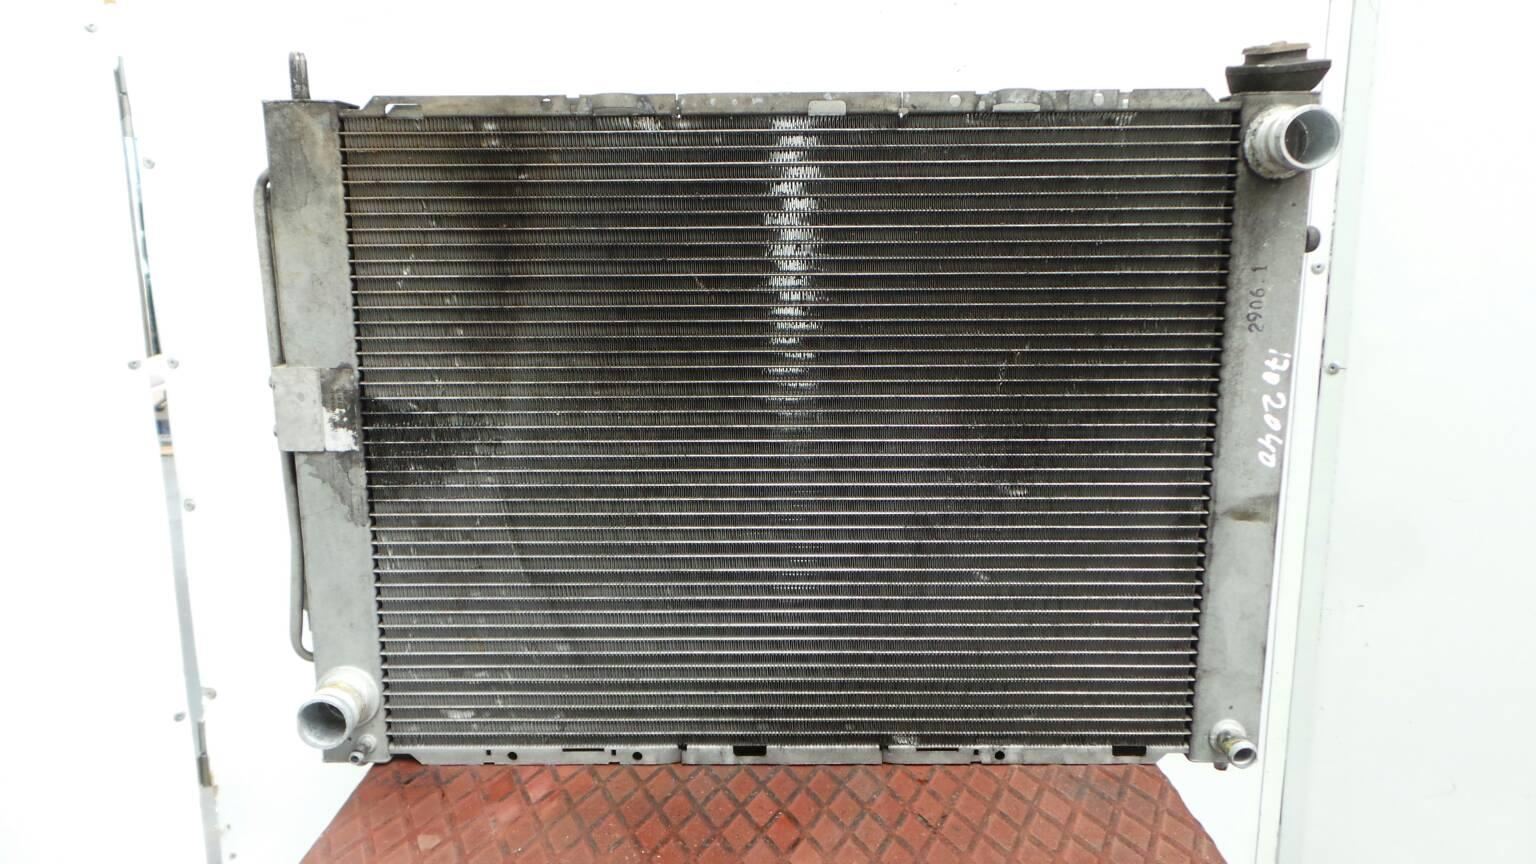 hight resolution of water radiator 8200688390 r134a 176010 0007000 renault clio iii br0